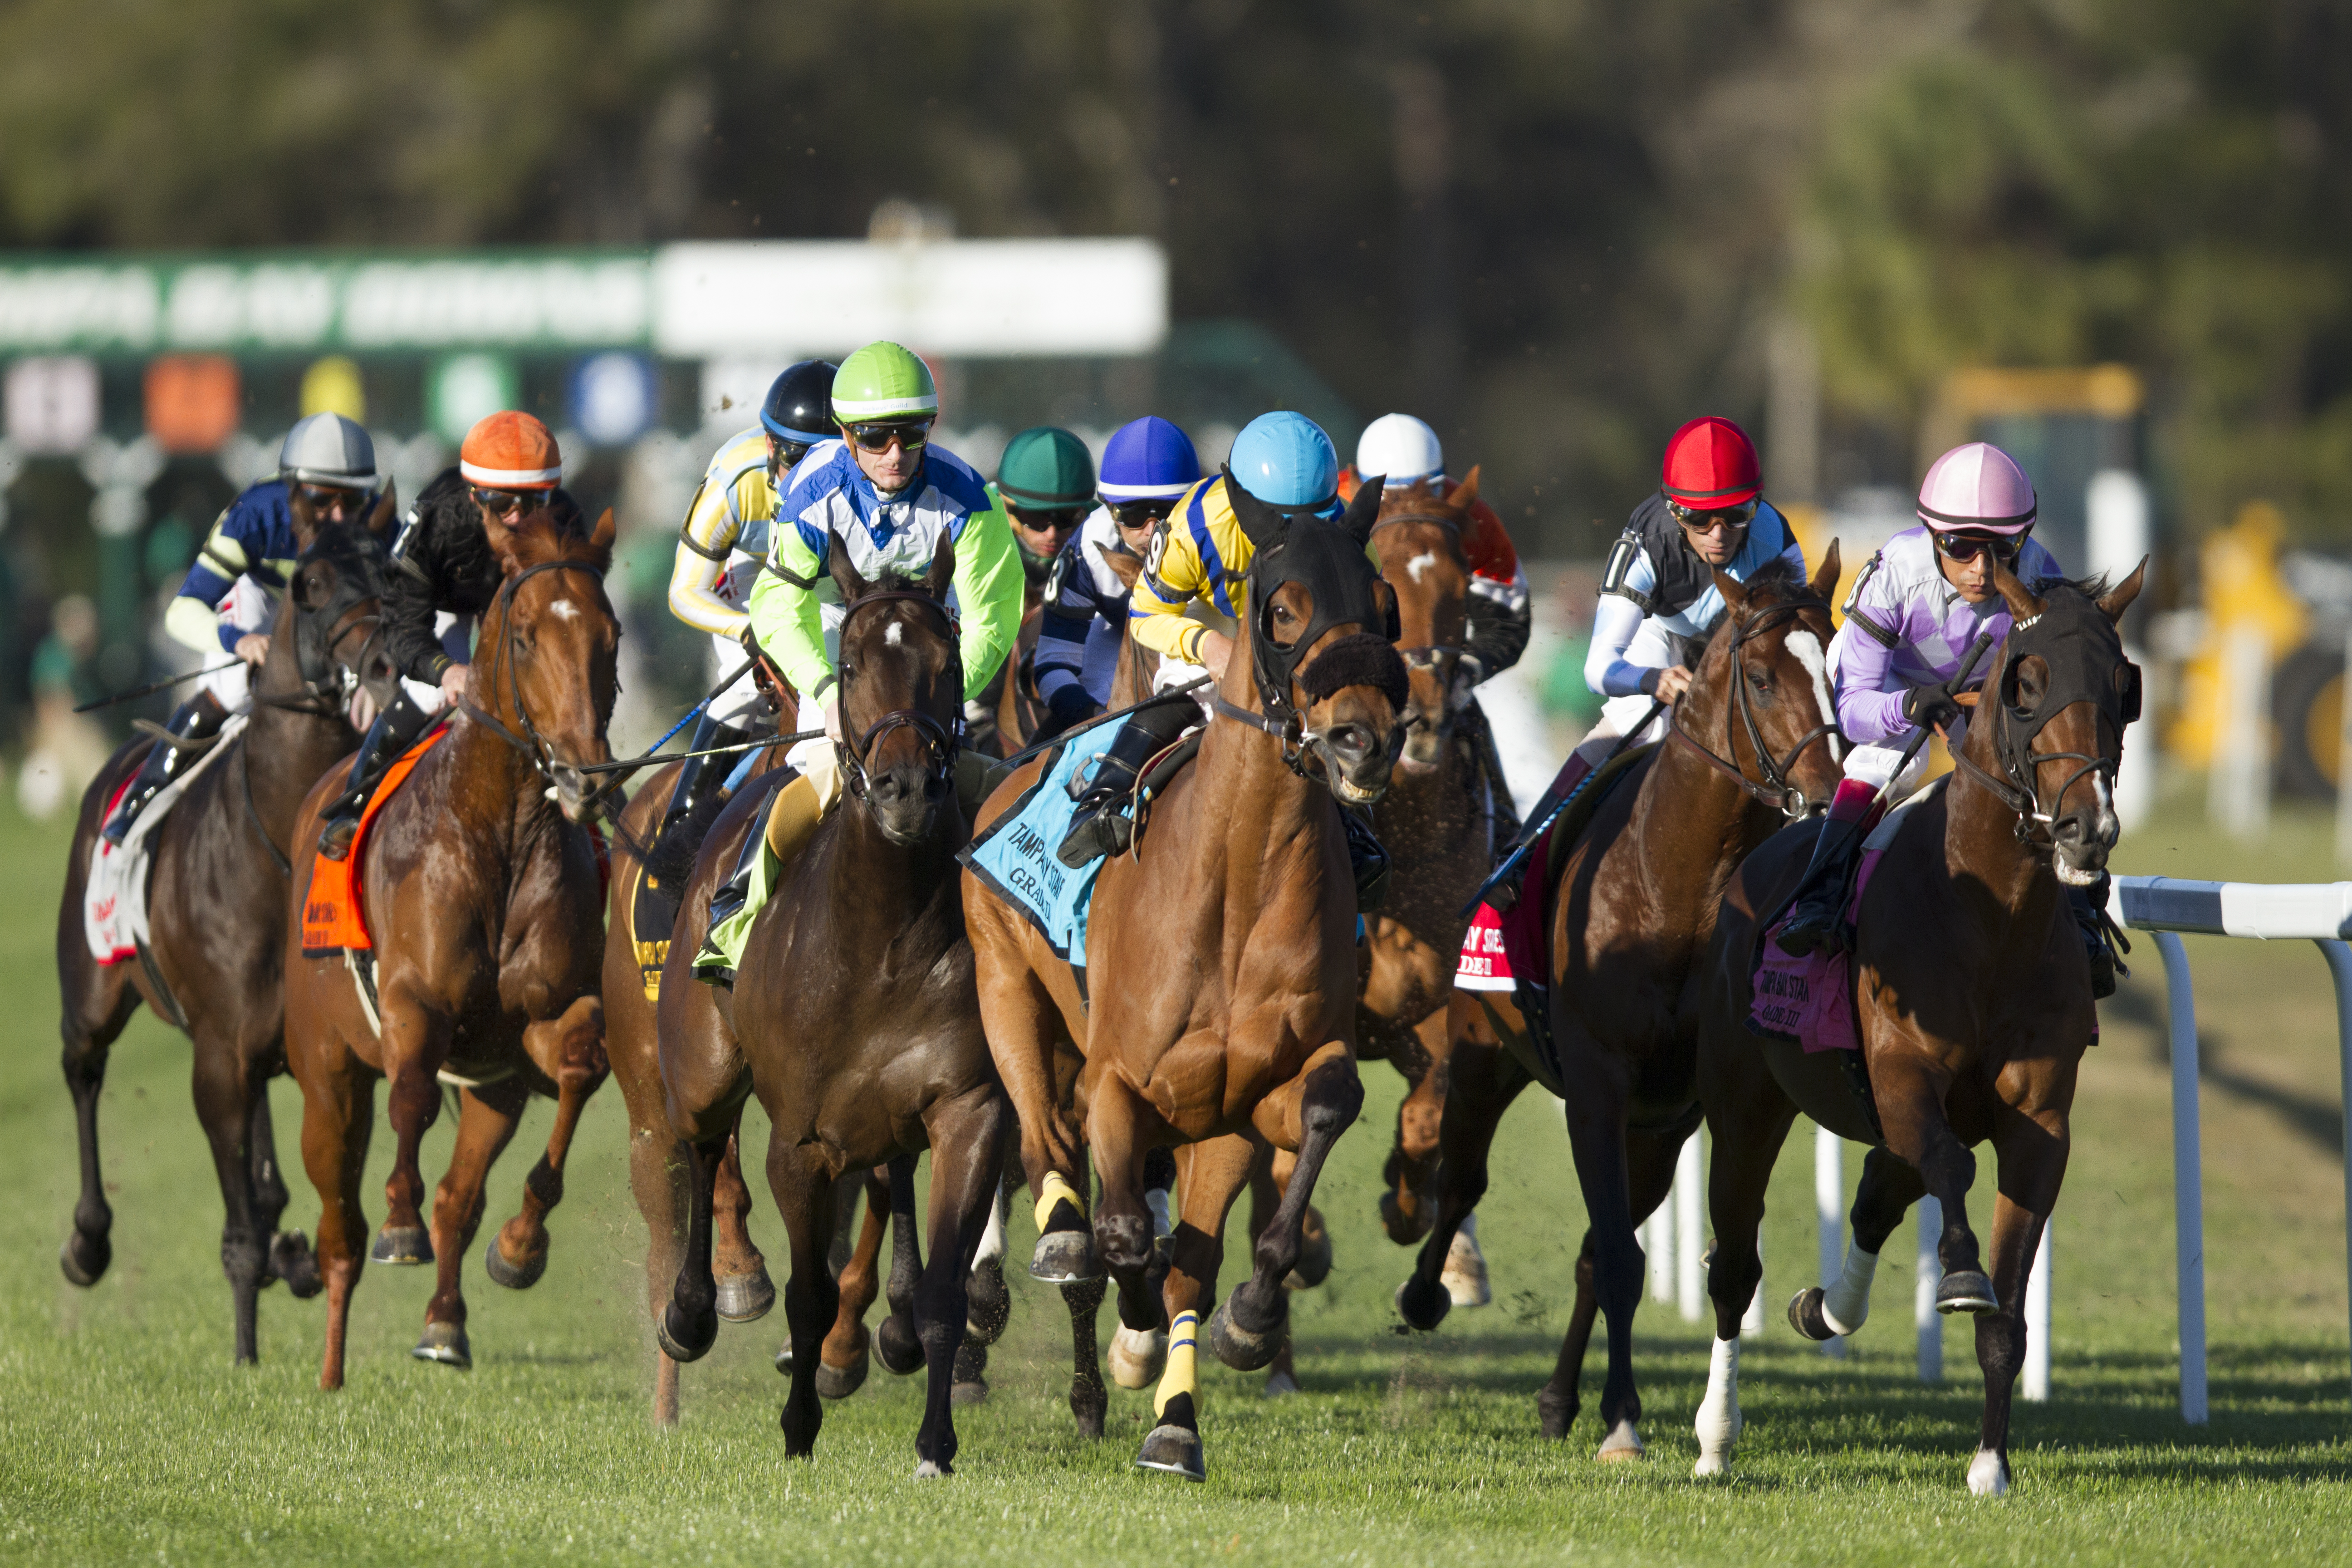 15th Annual Florida Cup Day at Tampa Bay Downs Image